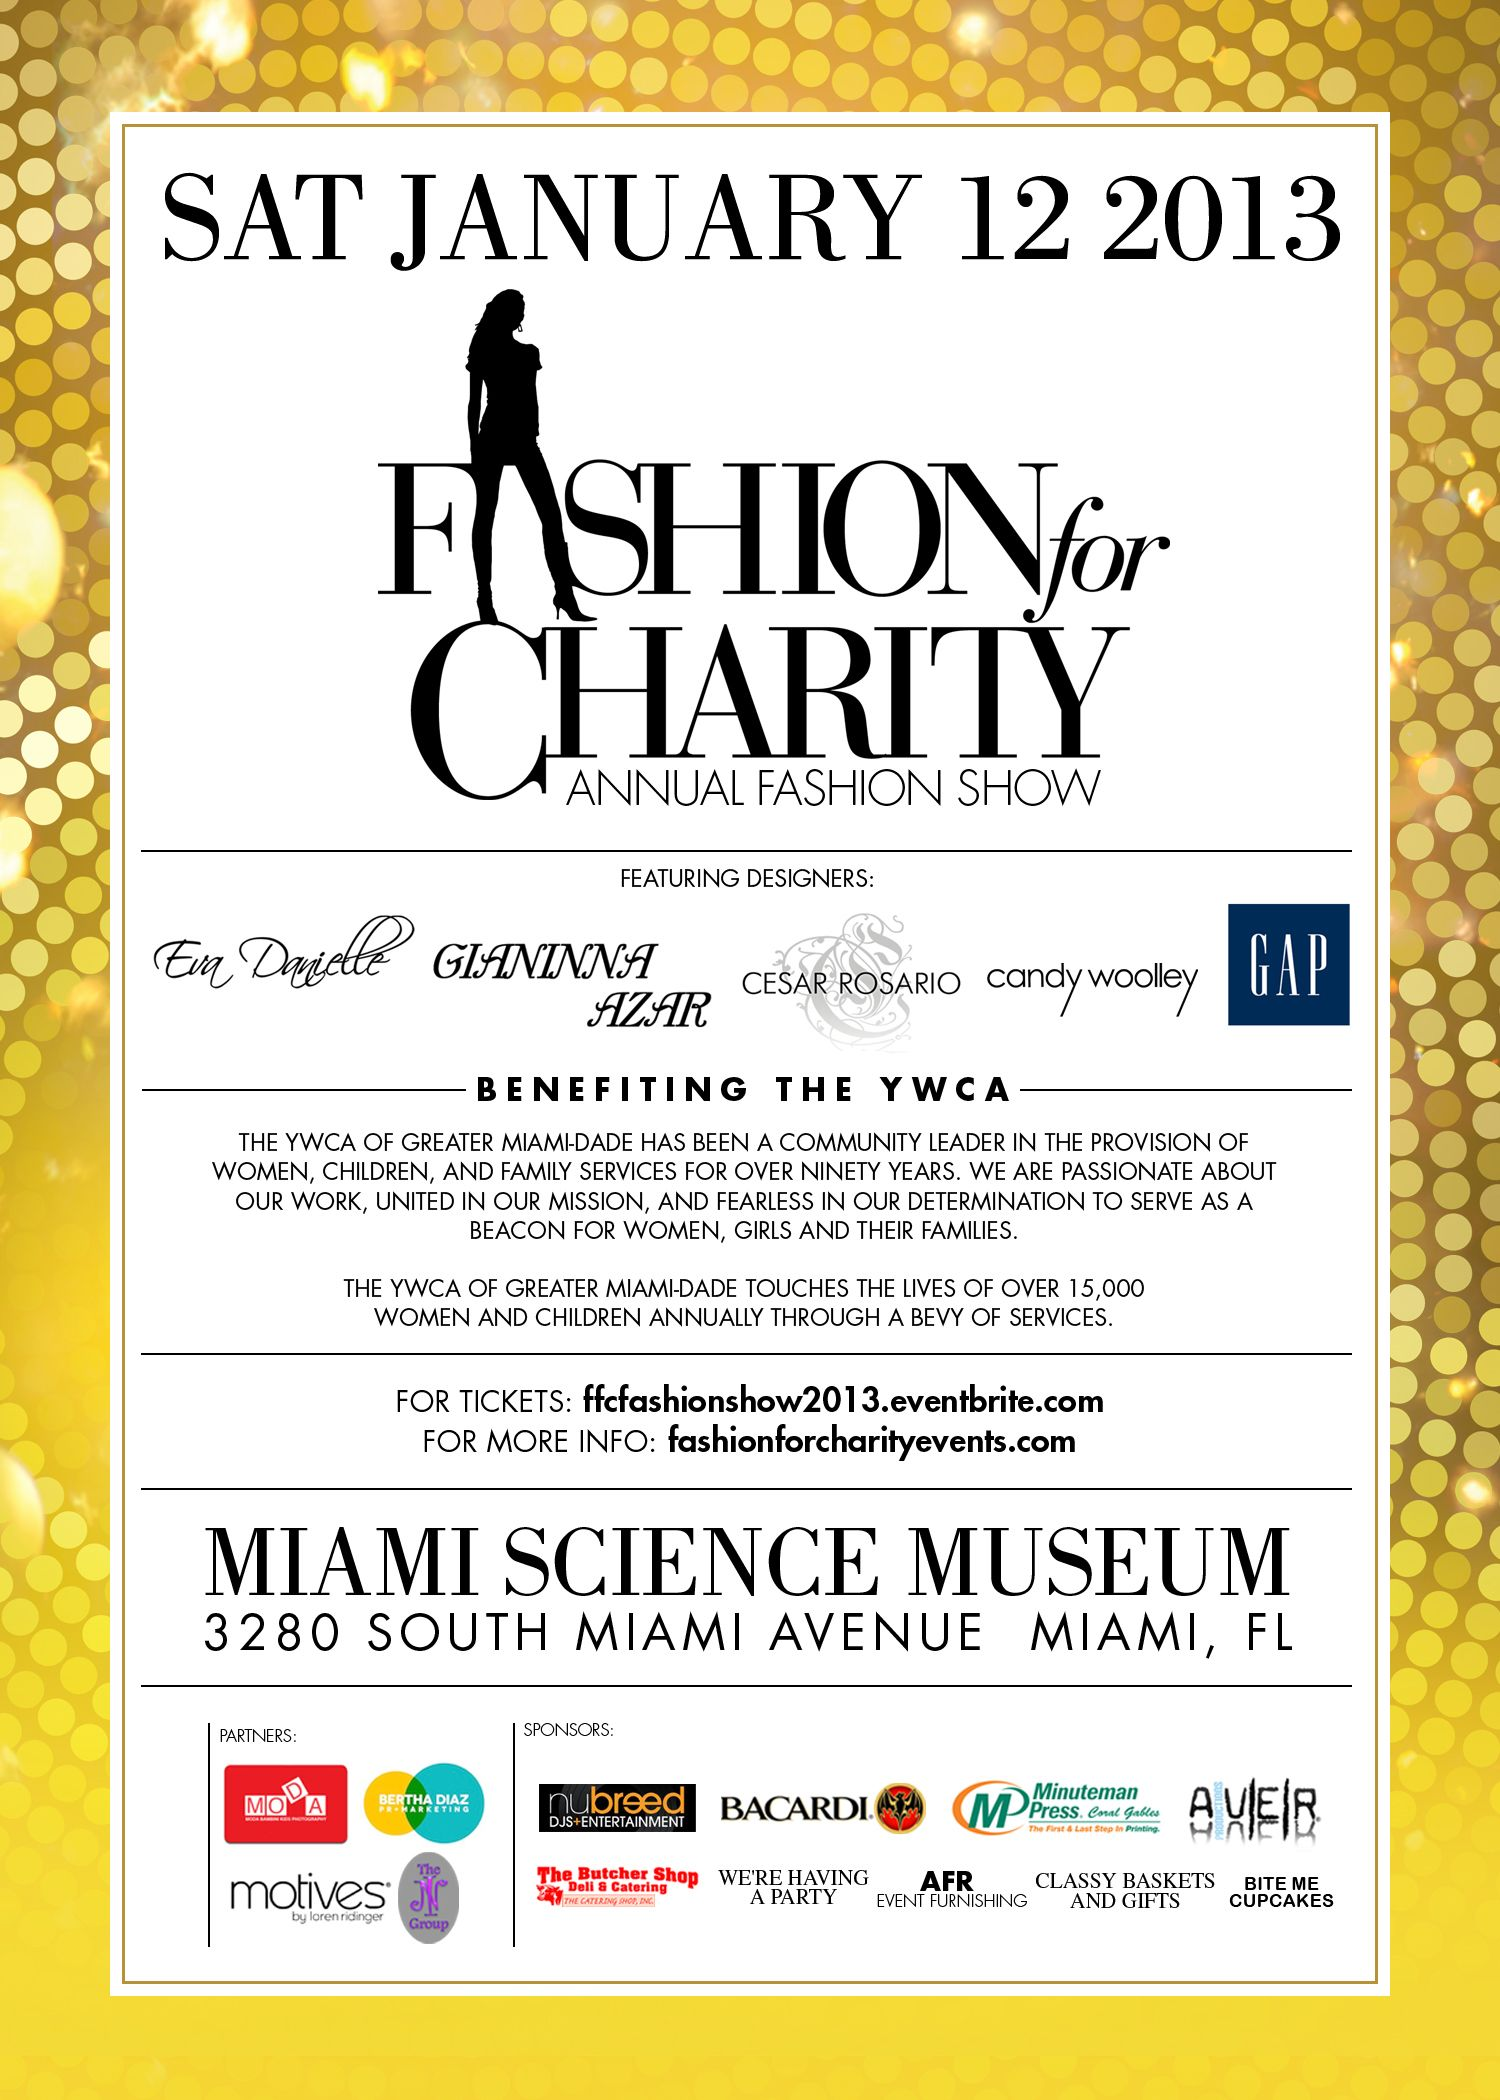 Charity invitation letter template charity computer support fashion for charity fashion show saturday january 12th press eee5e90ab35f638603d03bf5027bd73f 131871095310743687 charity invitation letter template stopboris Choice Image